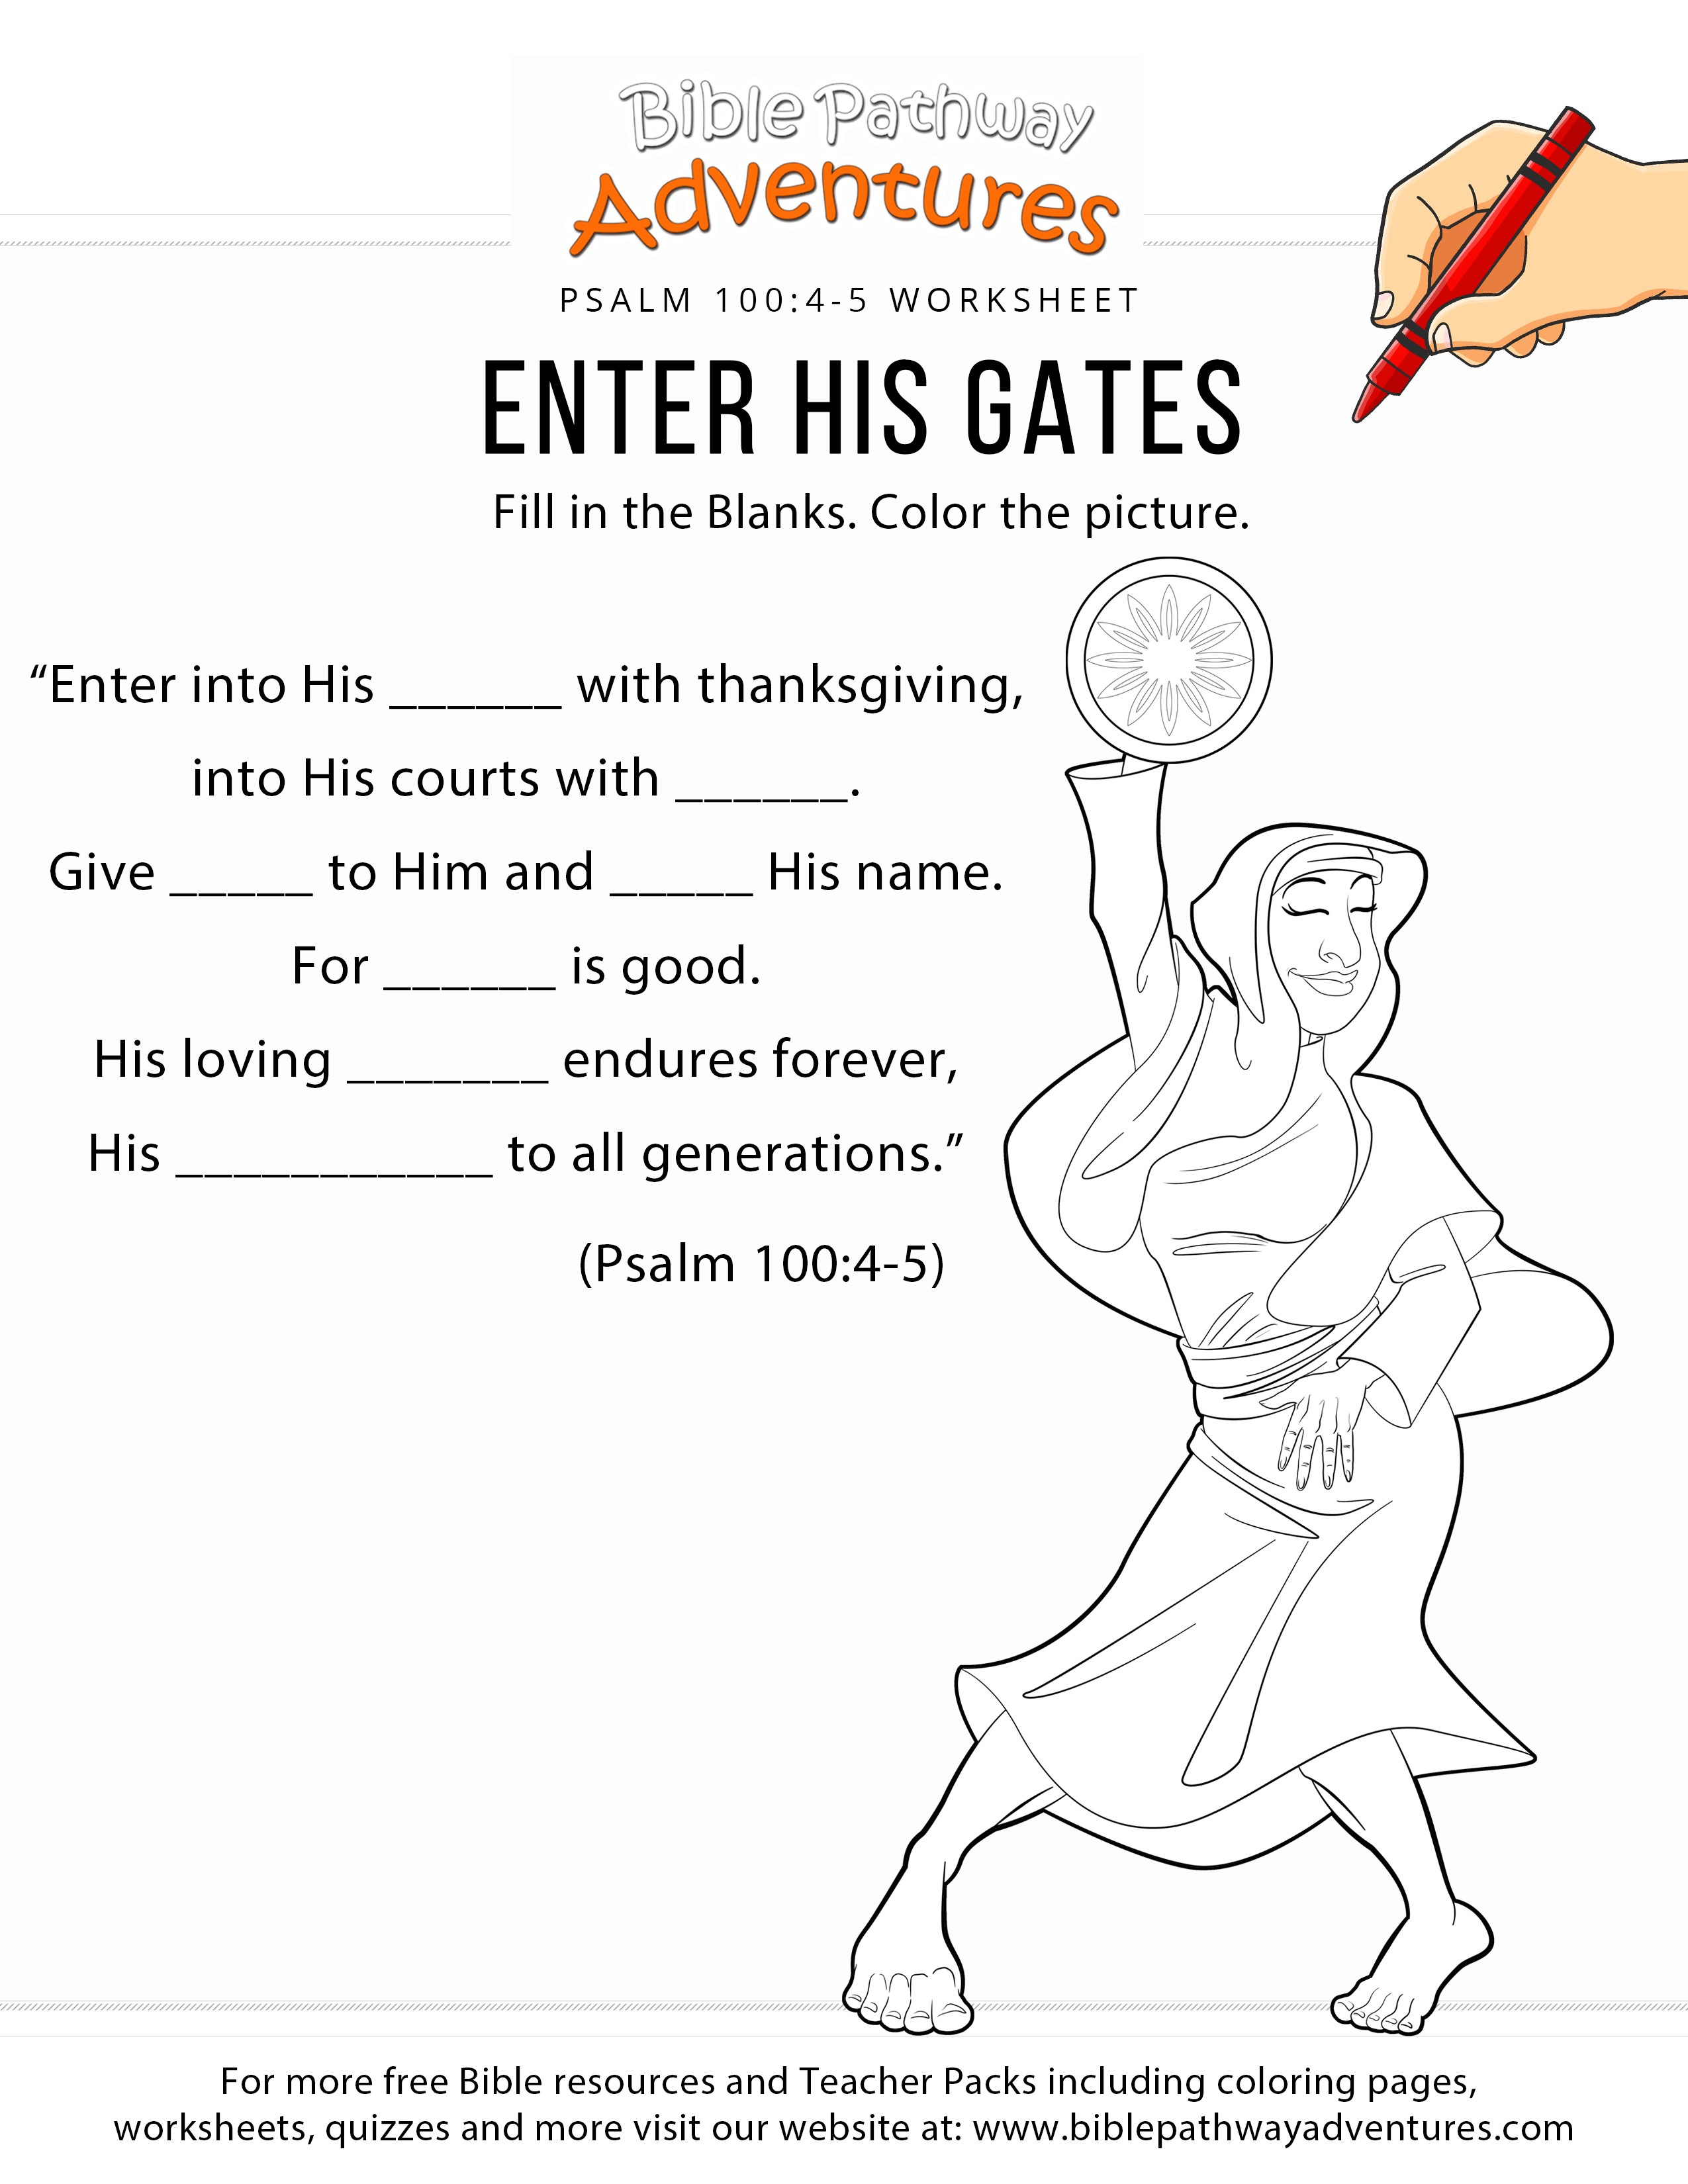 Coloring Book World ~ Coloring Pages Bible Stories Preschoolers - Free Printable Disney Stories